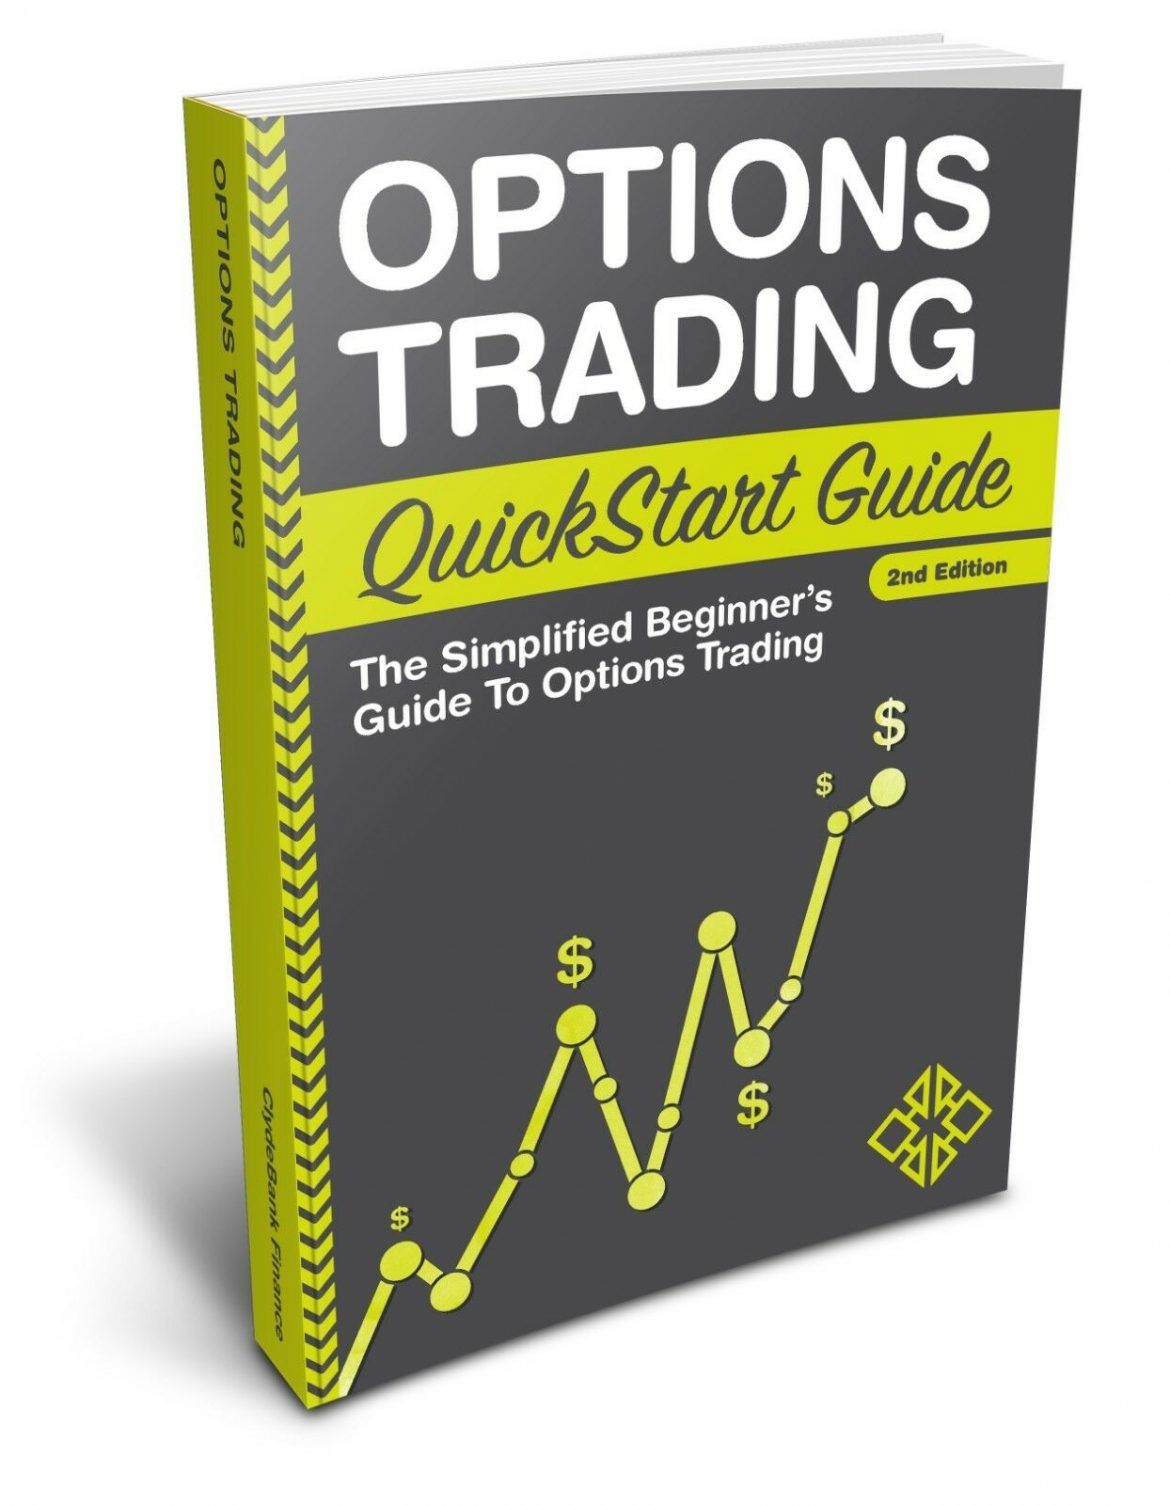 Options Trading QuickStart Guide: The Simplified Beginner's Guide To Options